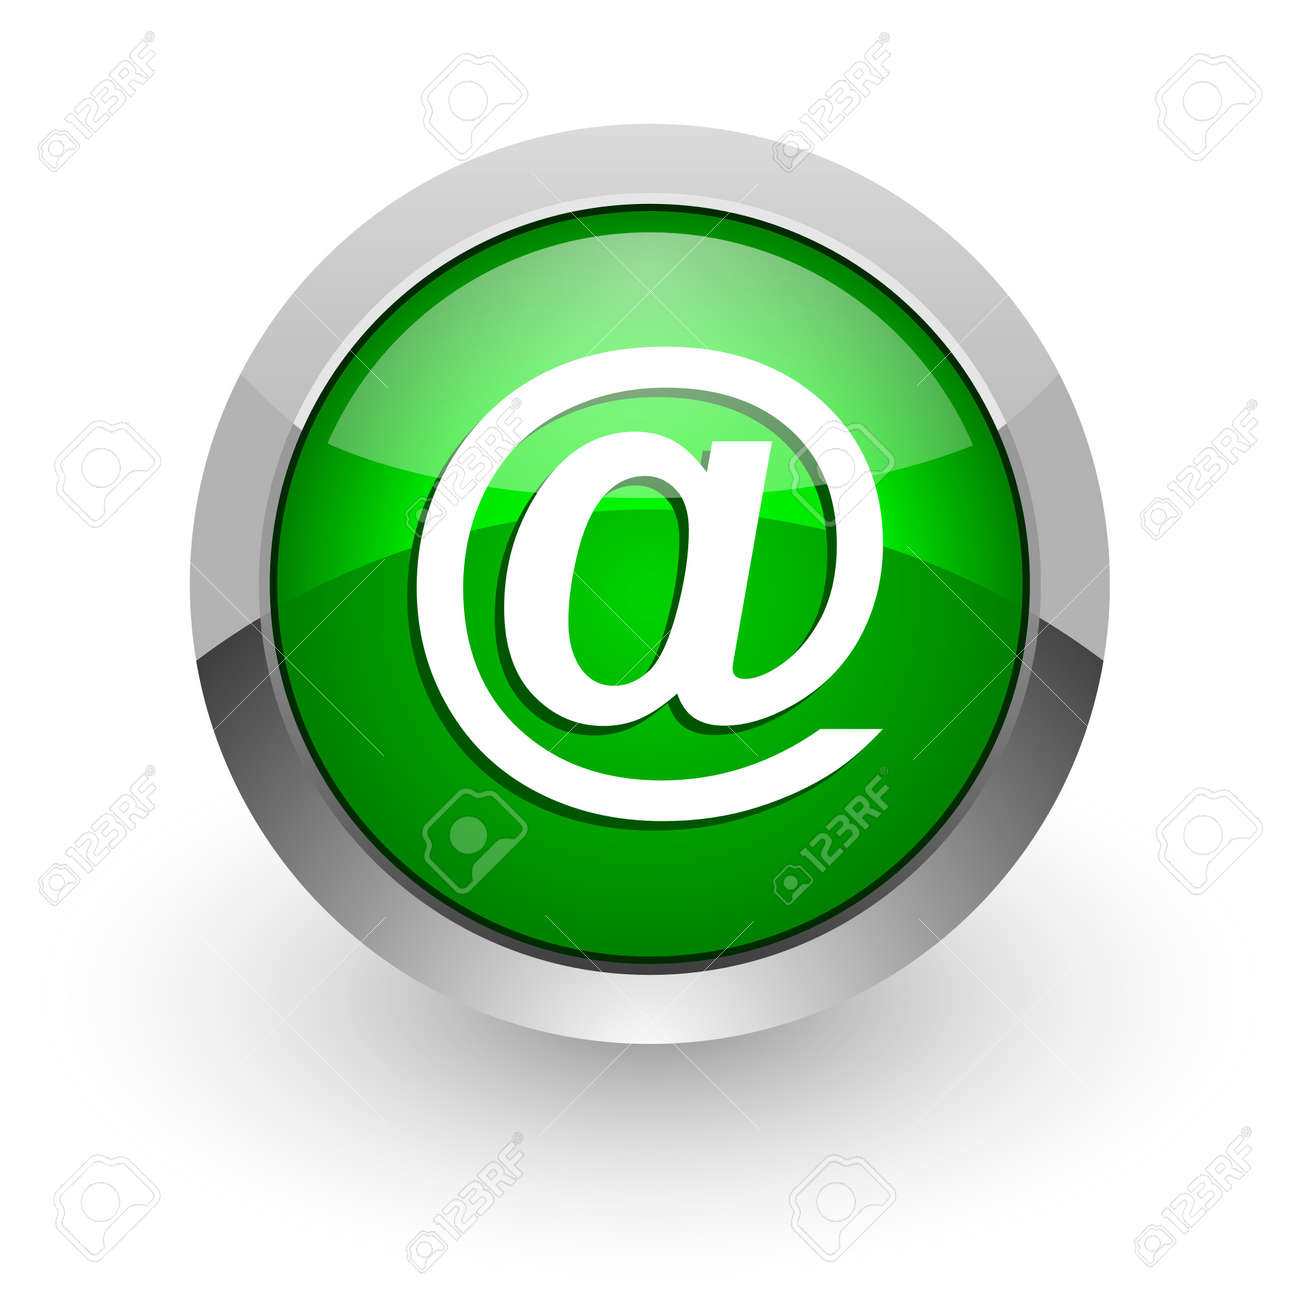 mail icon Stock Photo - 14471692